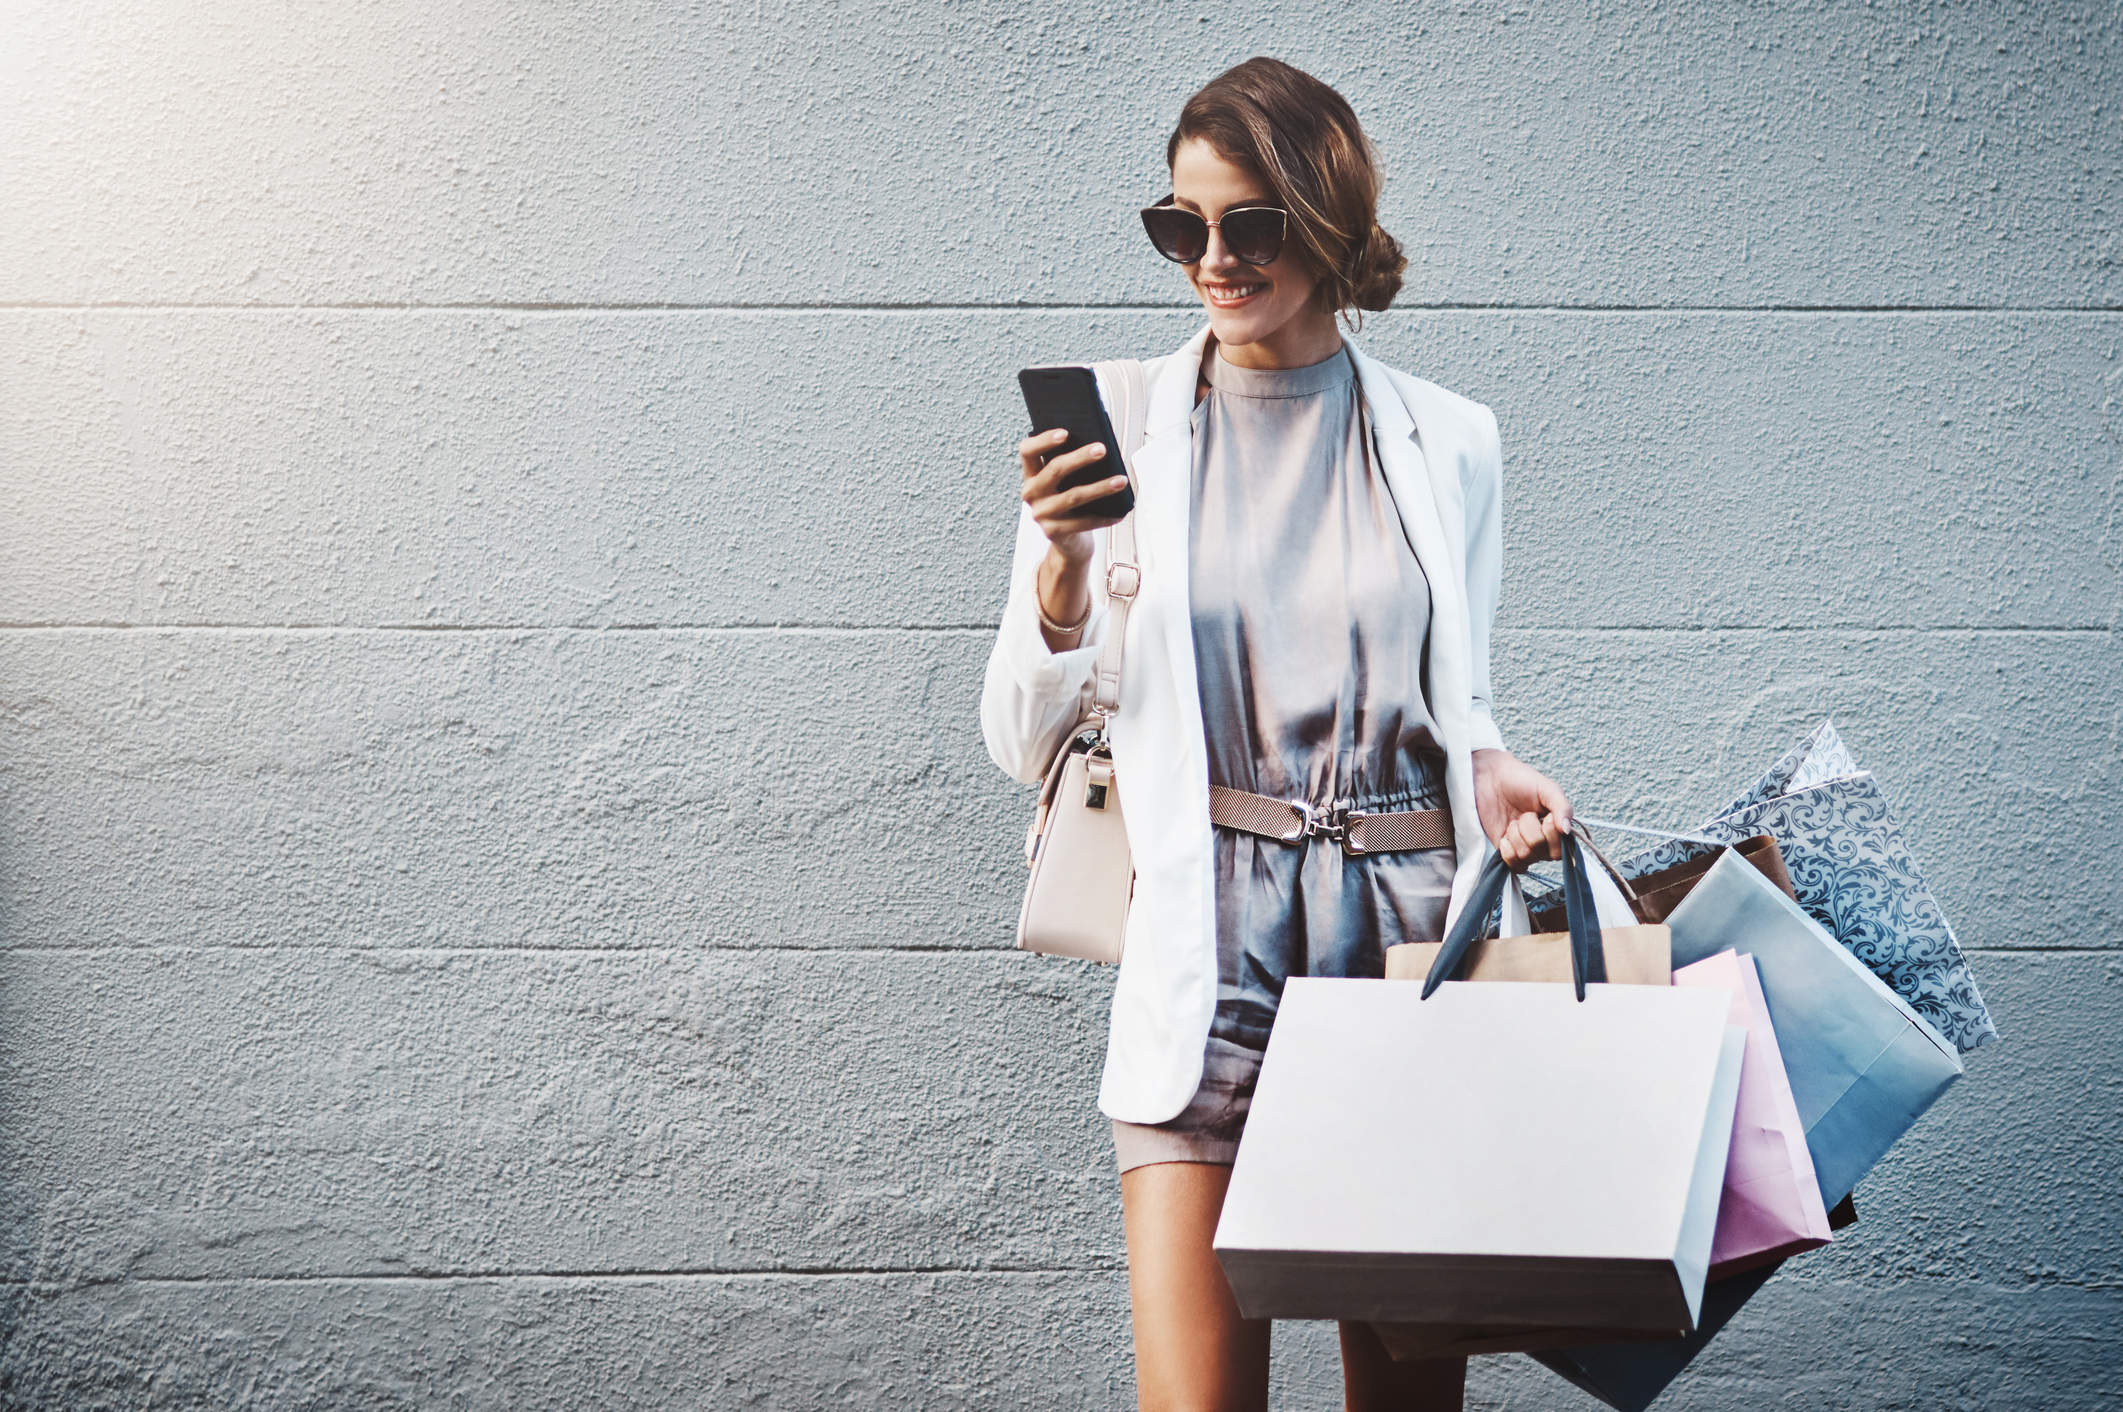 woman looking at her phone while holding shopping bags sale